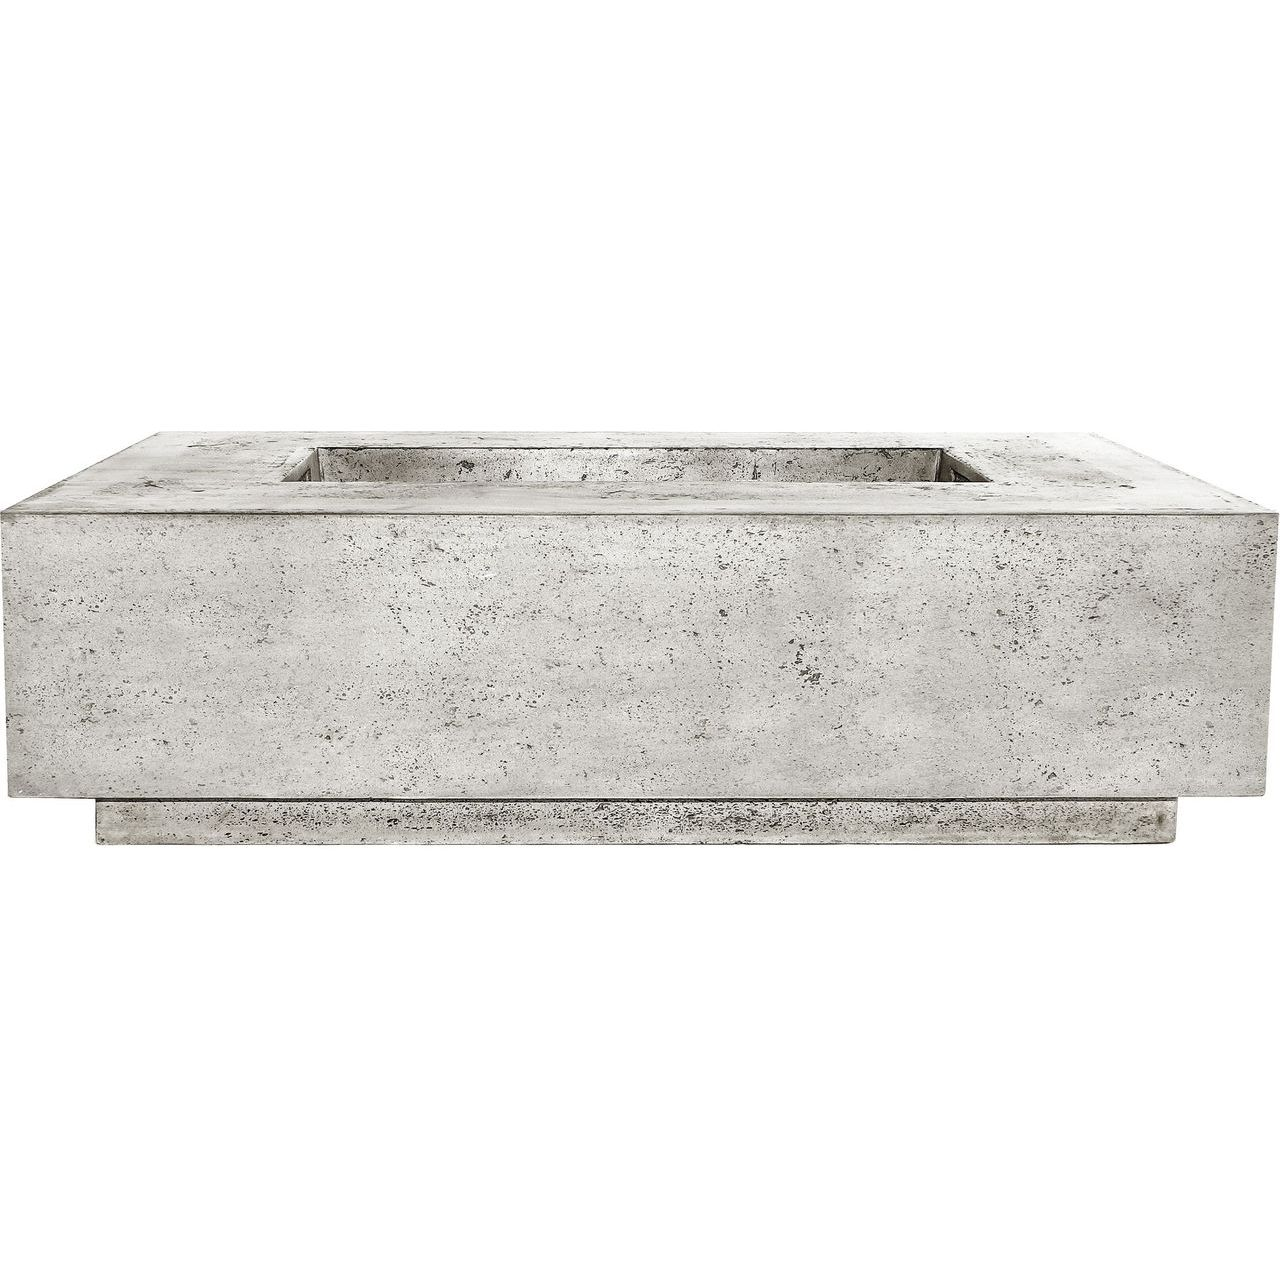 Prism Hardscapes Tavola 1 Fire Table in Natural - LP